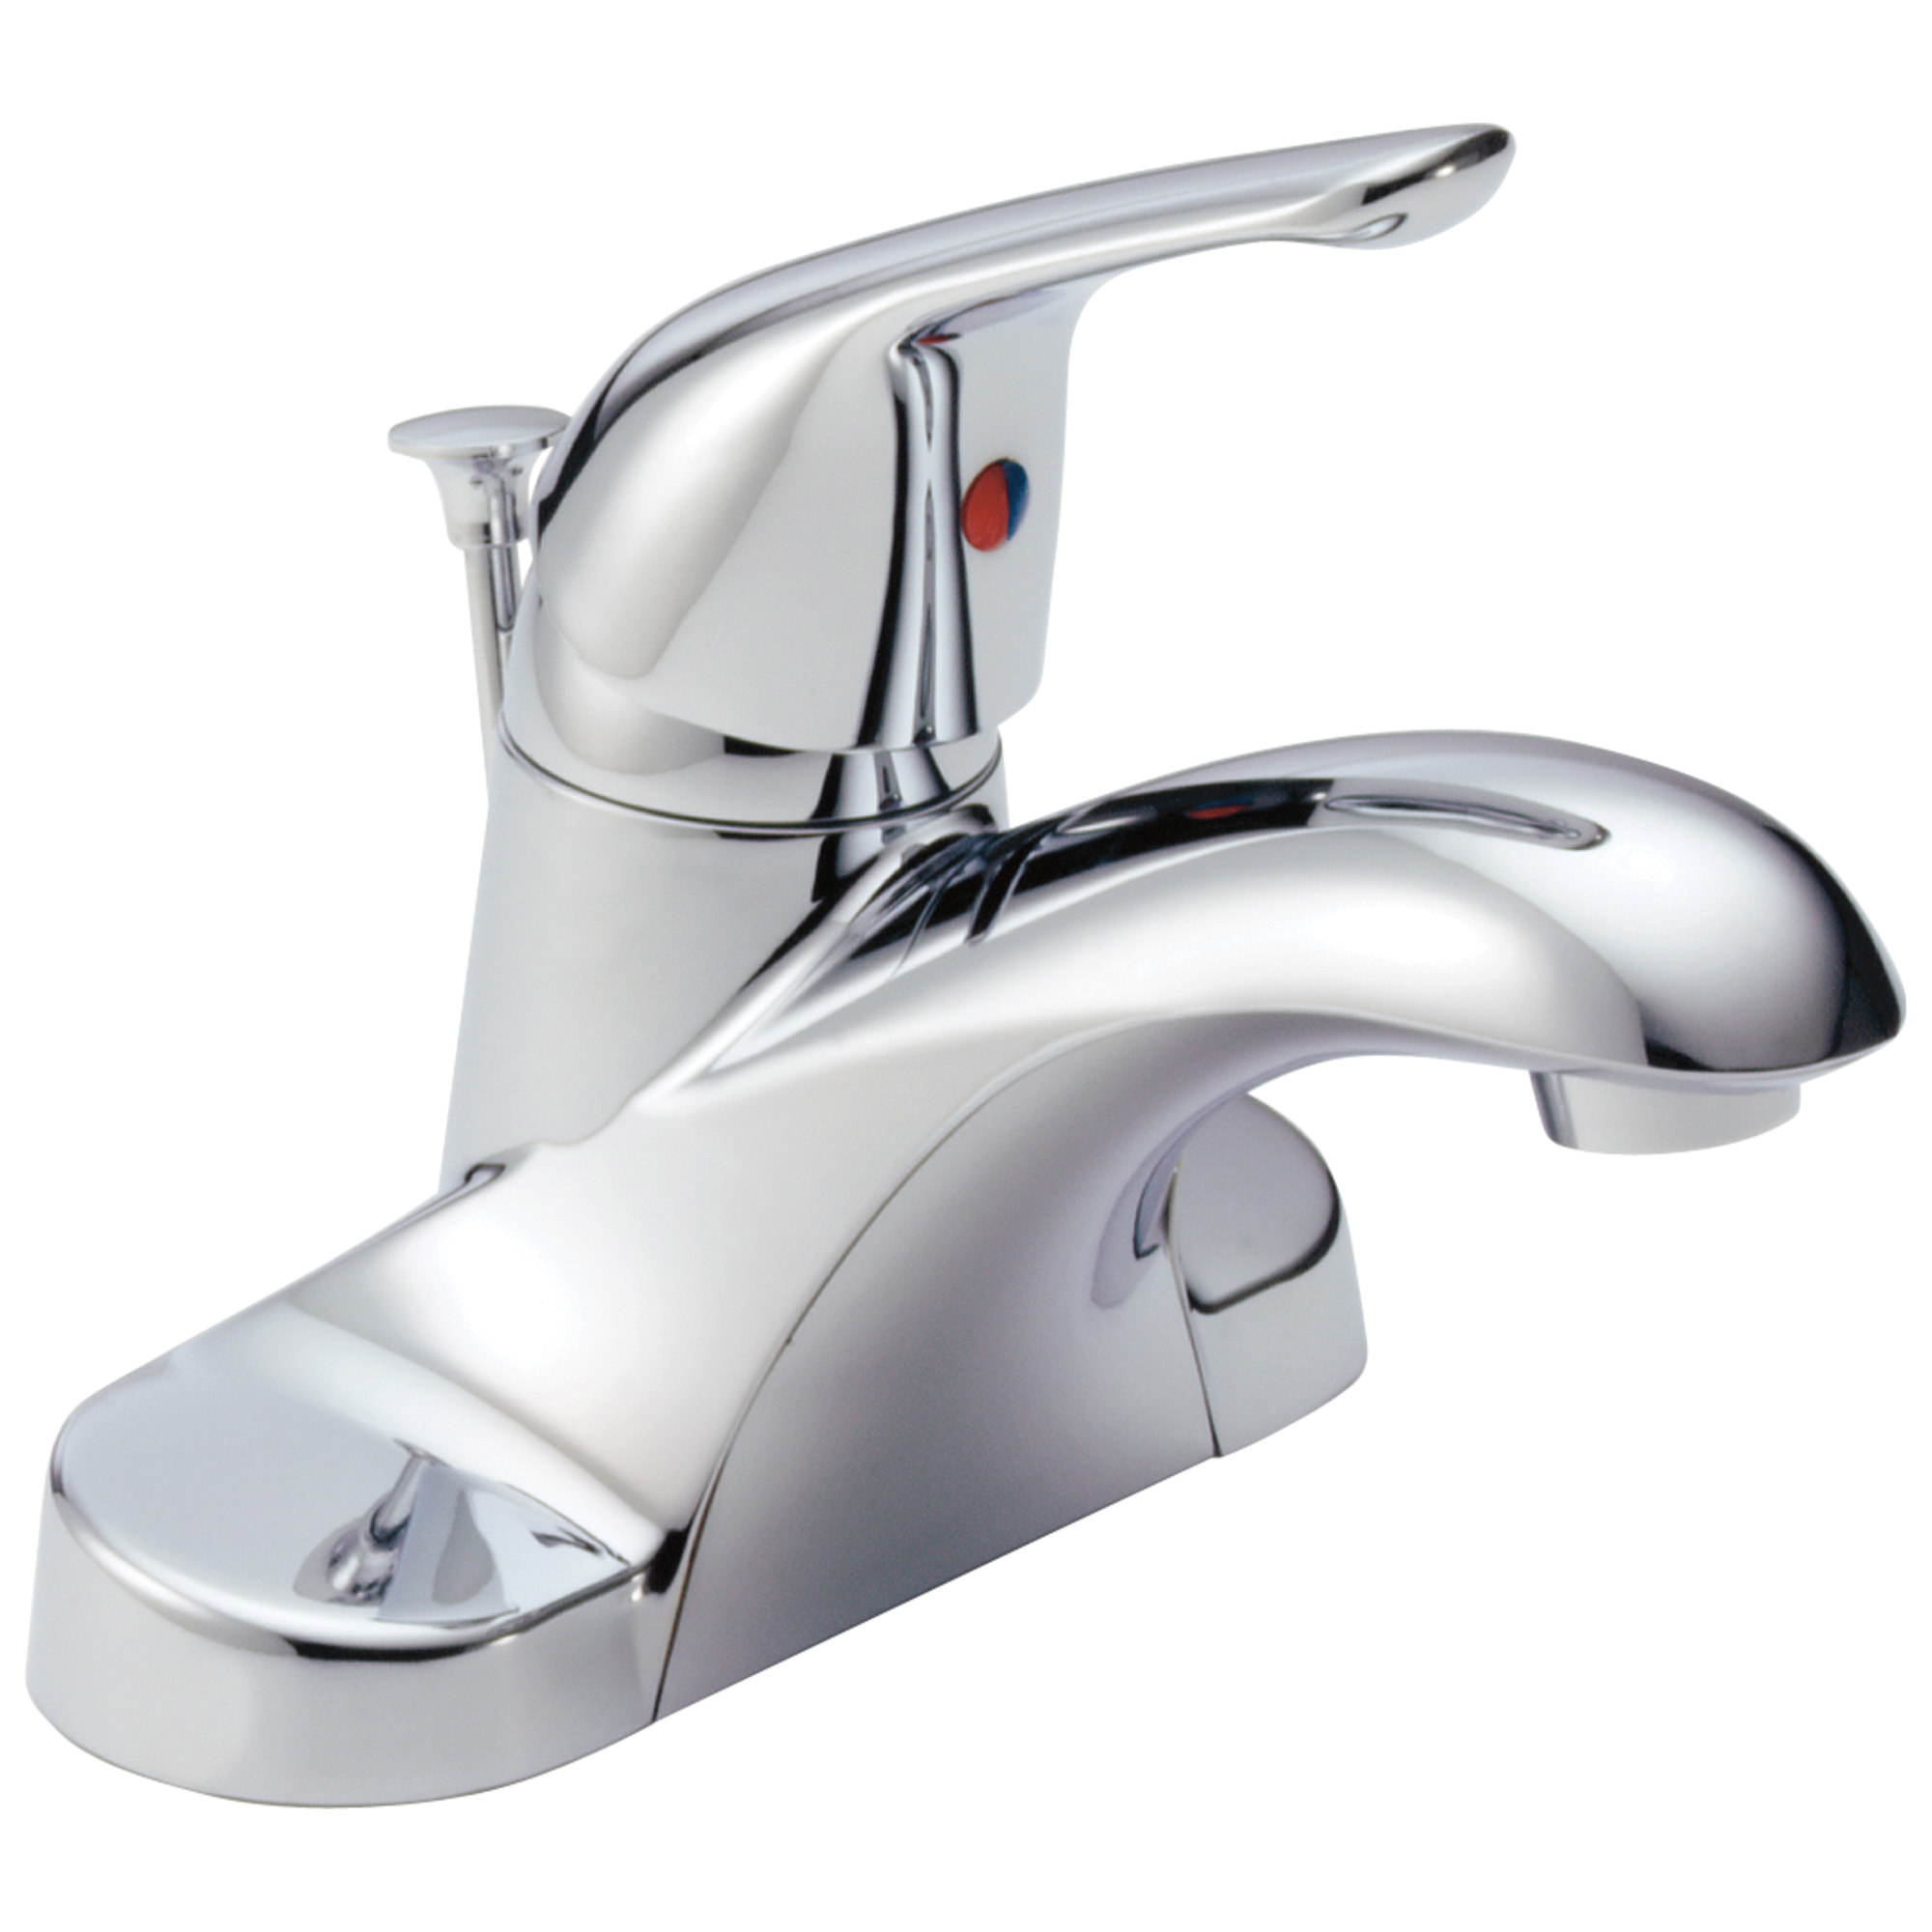 DELTA® B510LF Centerset Lavatory Faucet, Foundations®, Chrome Plated, 1 Handles, Pop-Up Drain, 1.5 gpm